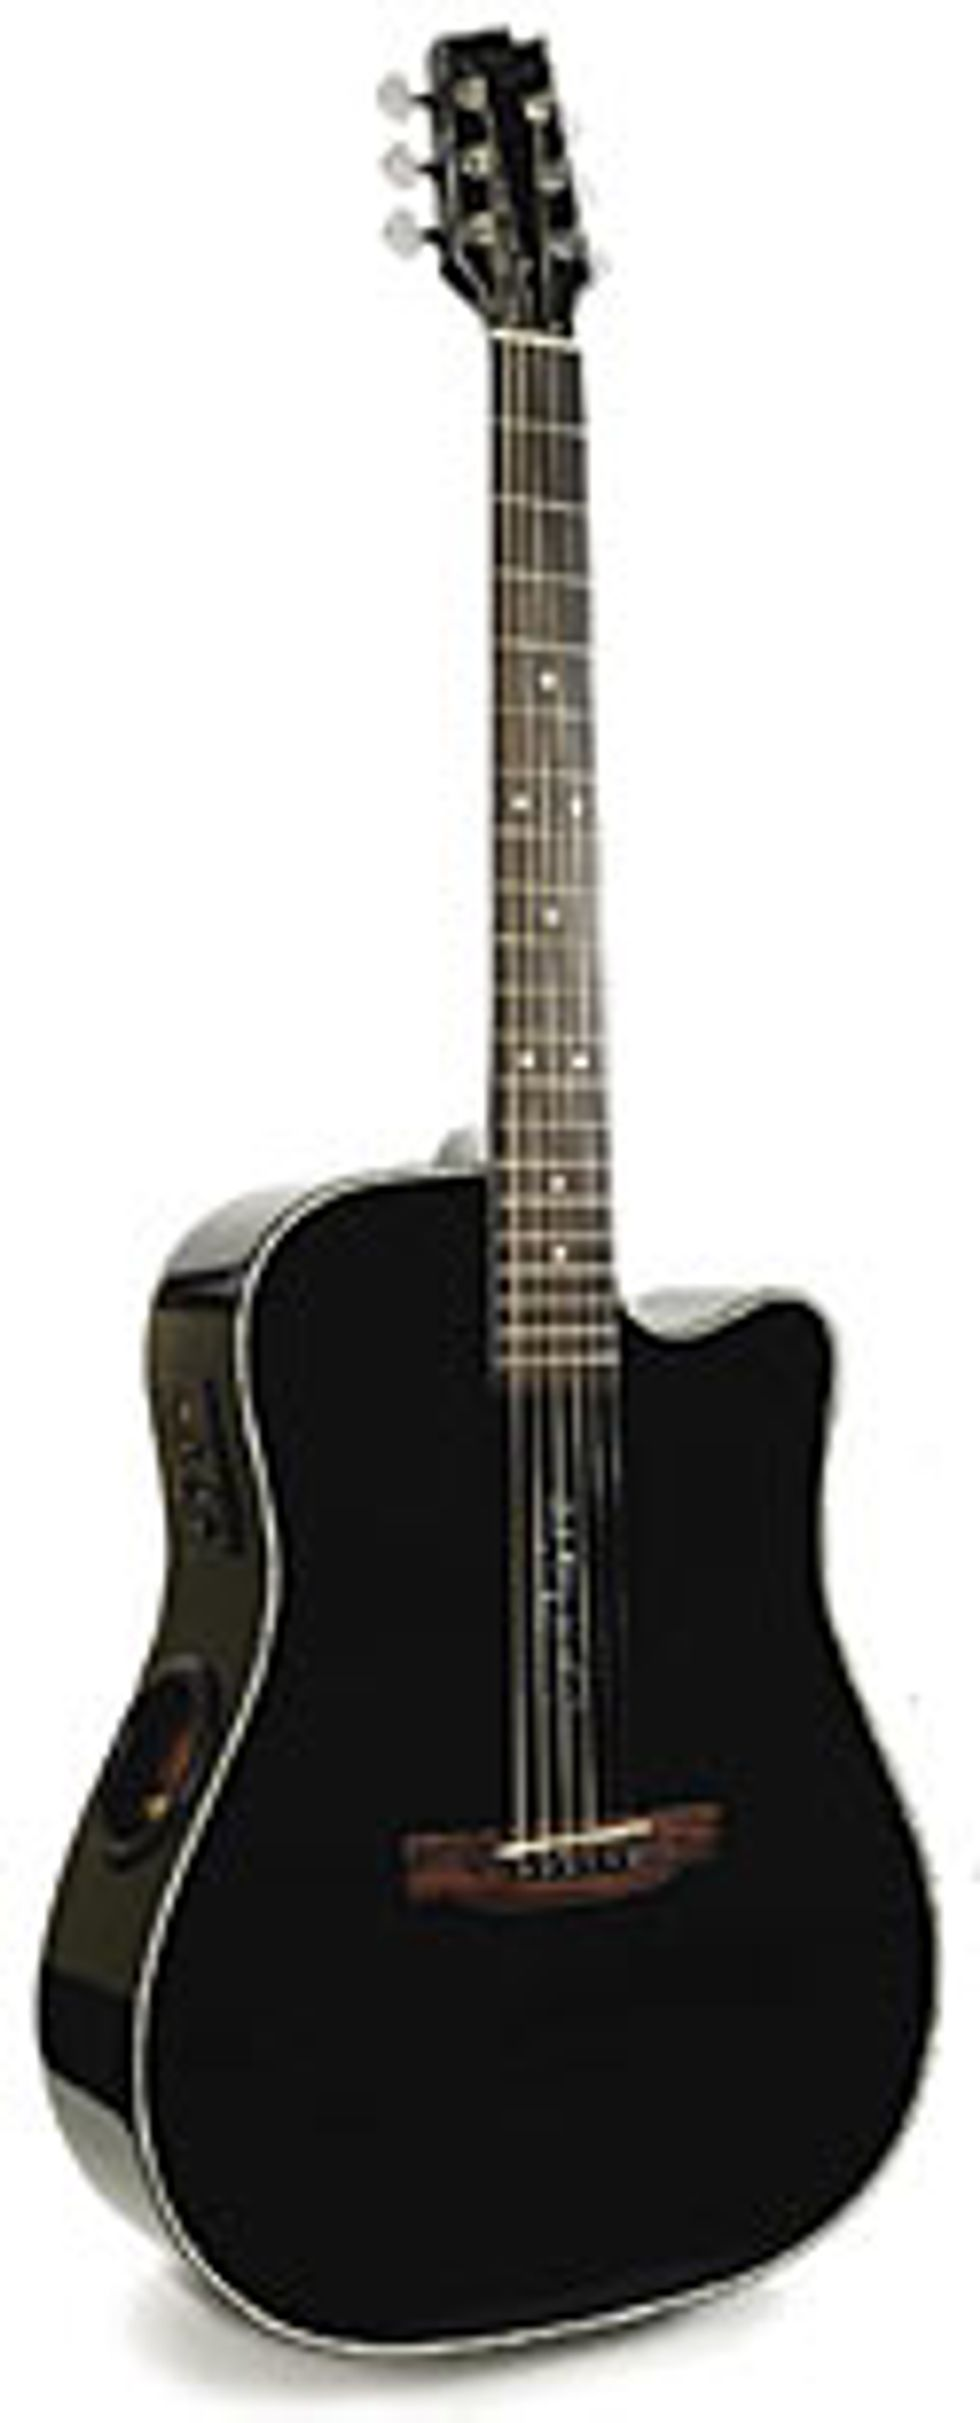 Boulder Creek Guitars ECR1-B Solitaire